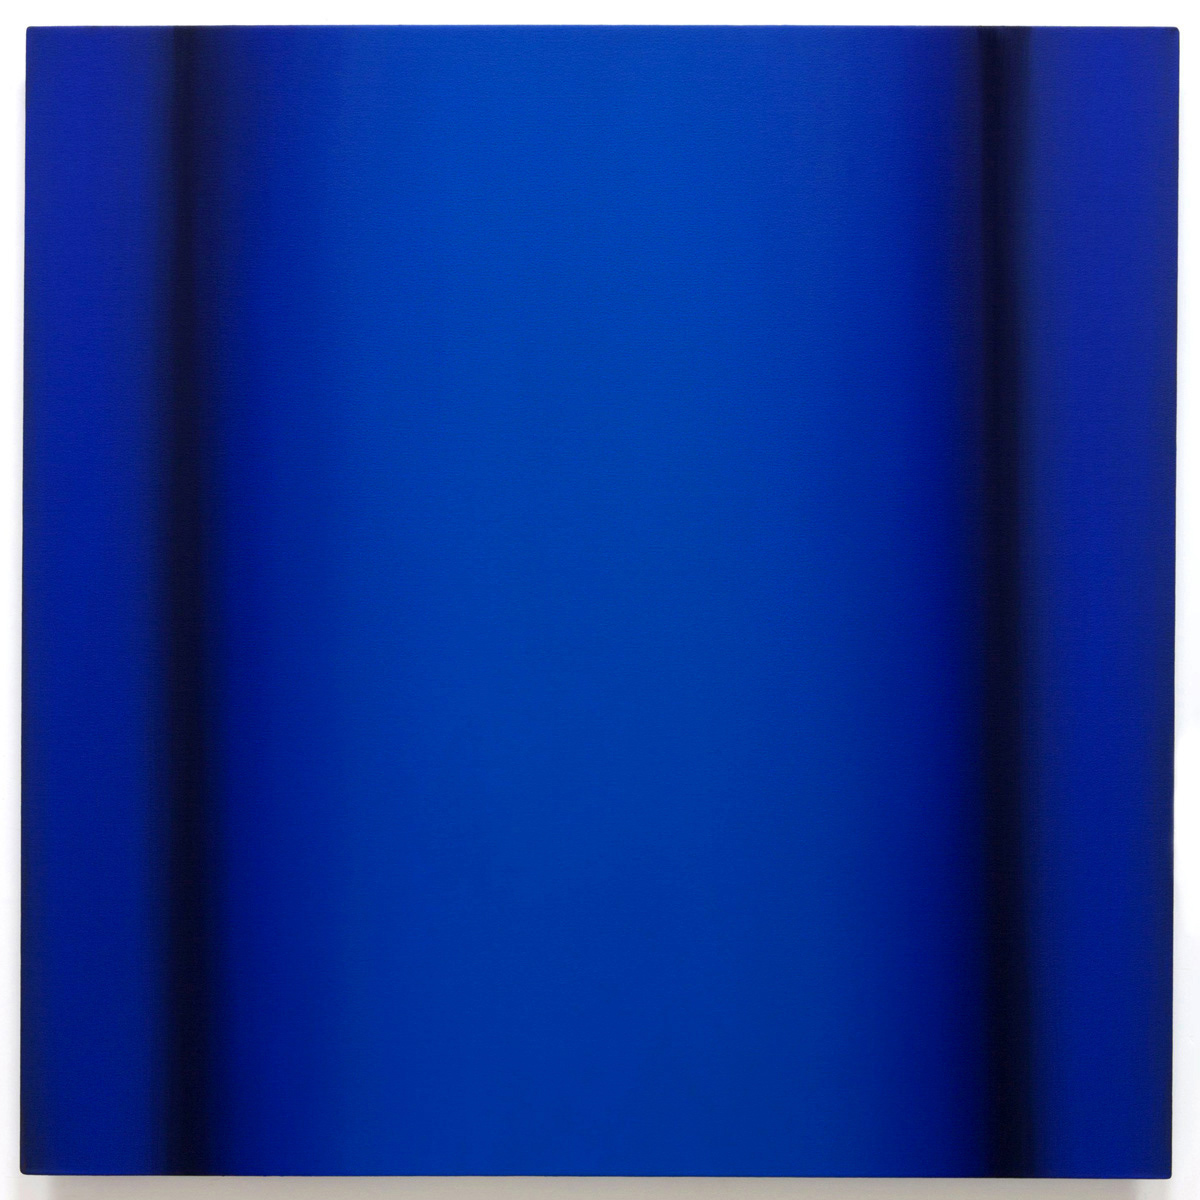 Blue Orange 1-S4848 (Blue Deep), Interplay Series, 2013, oil on canvas on custom beveled stretcher, 48 x 48 x 3 in. (122 x 122 x 7 cm.)